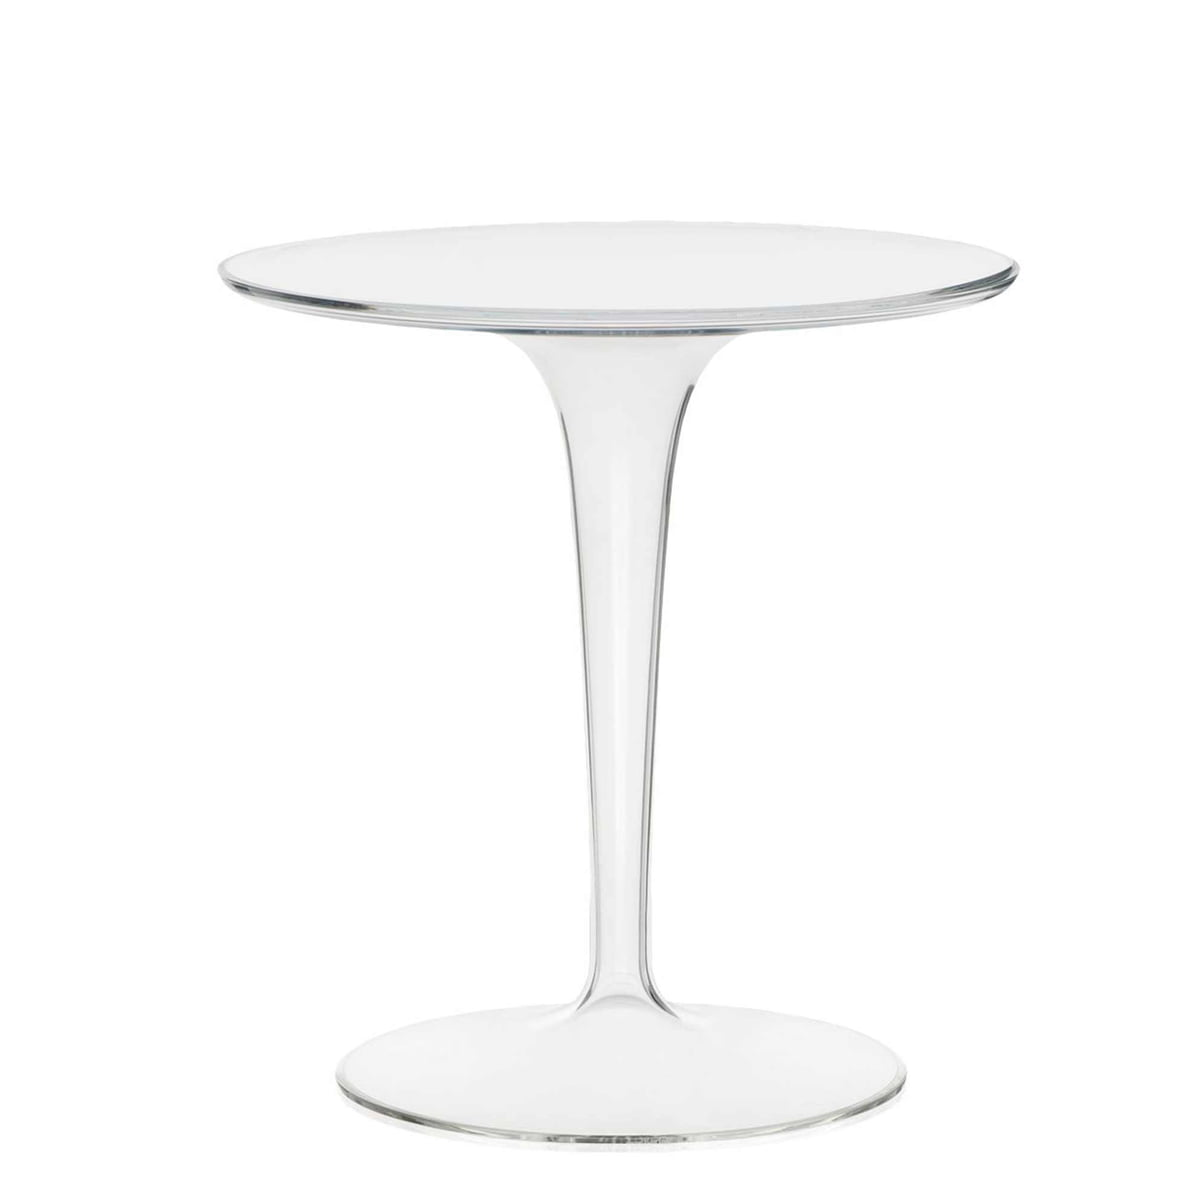 Kartell   Tip Top Side Table   Transparent